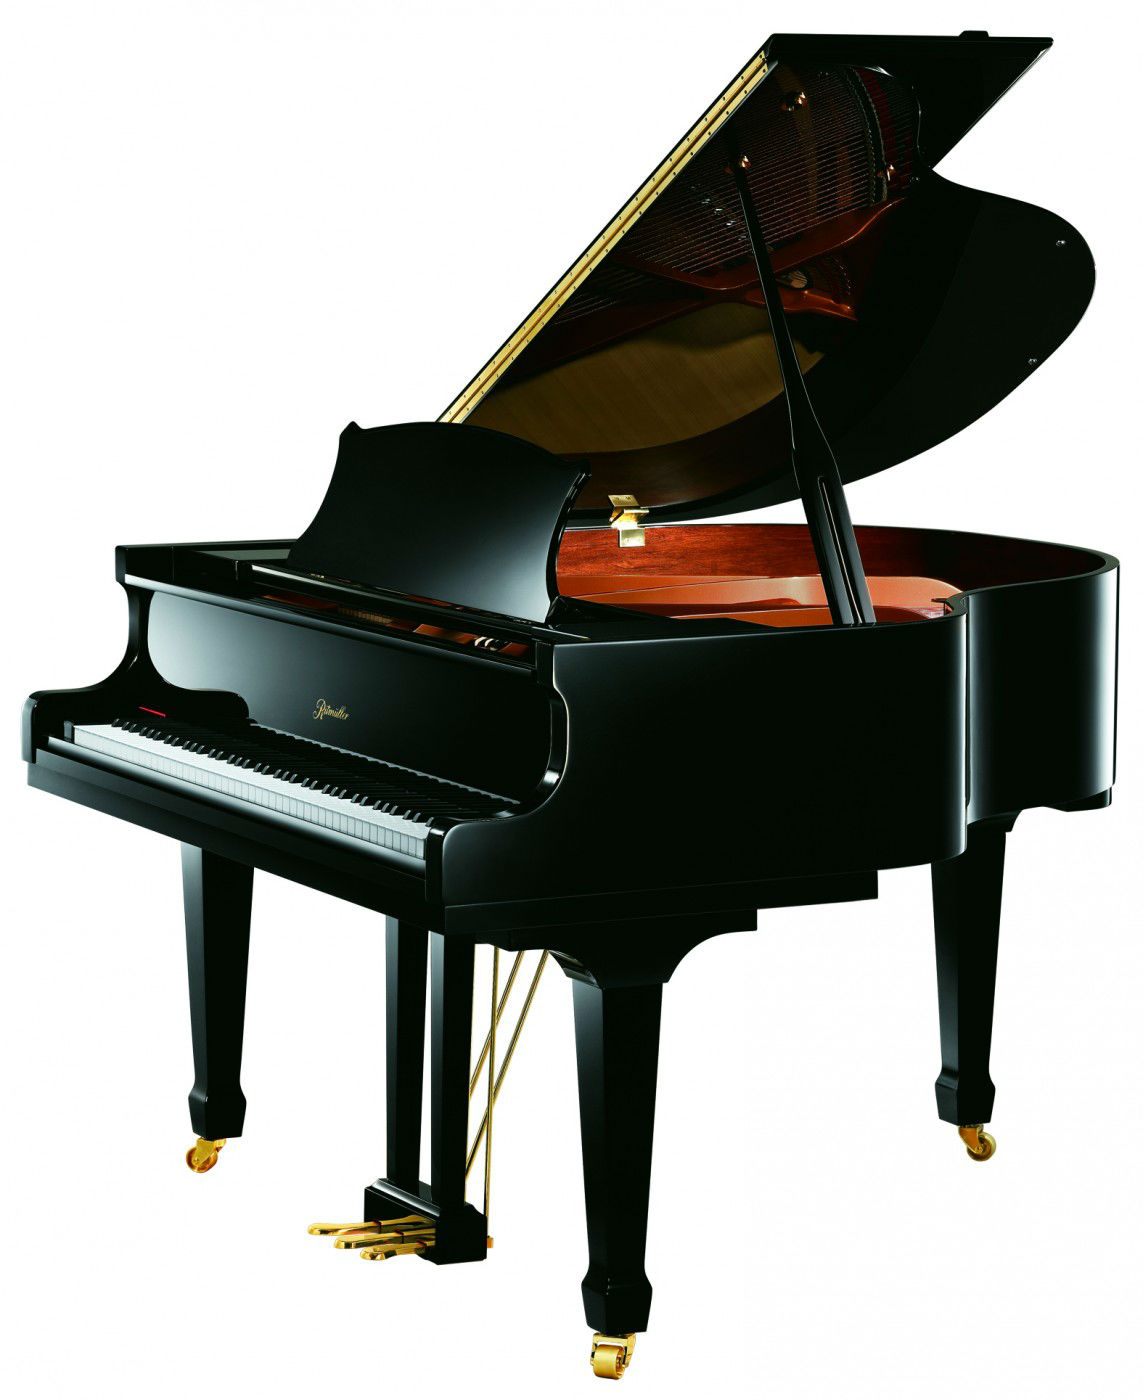 Ritmuller R8 Conventional Grand Piano